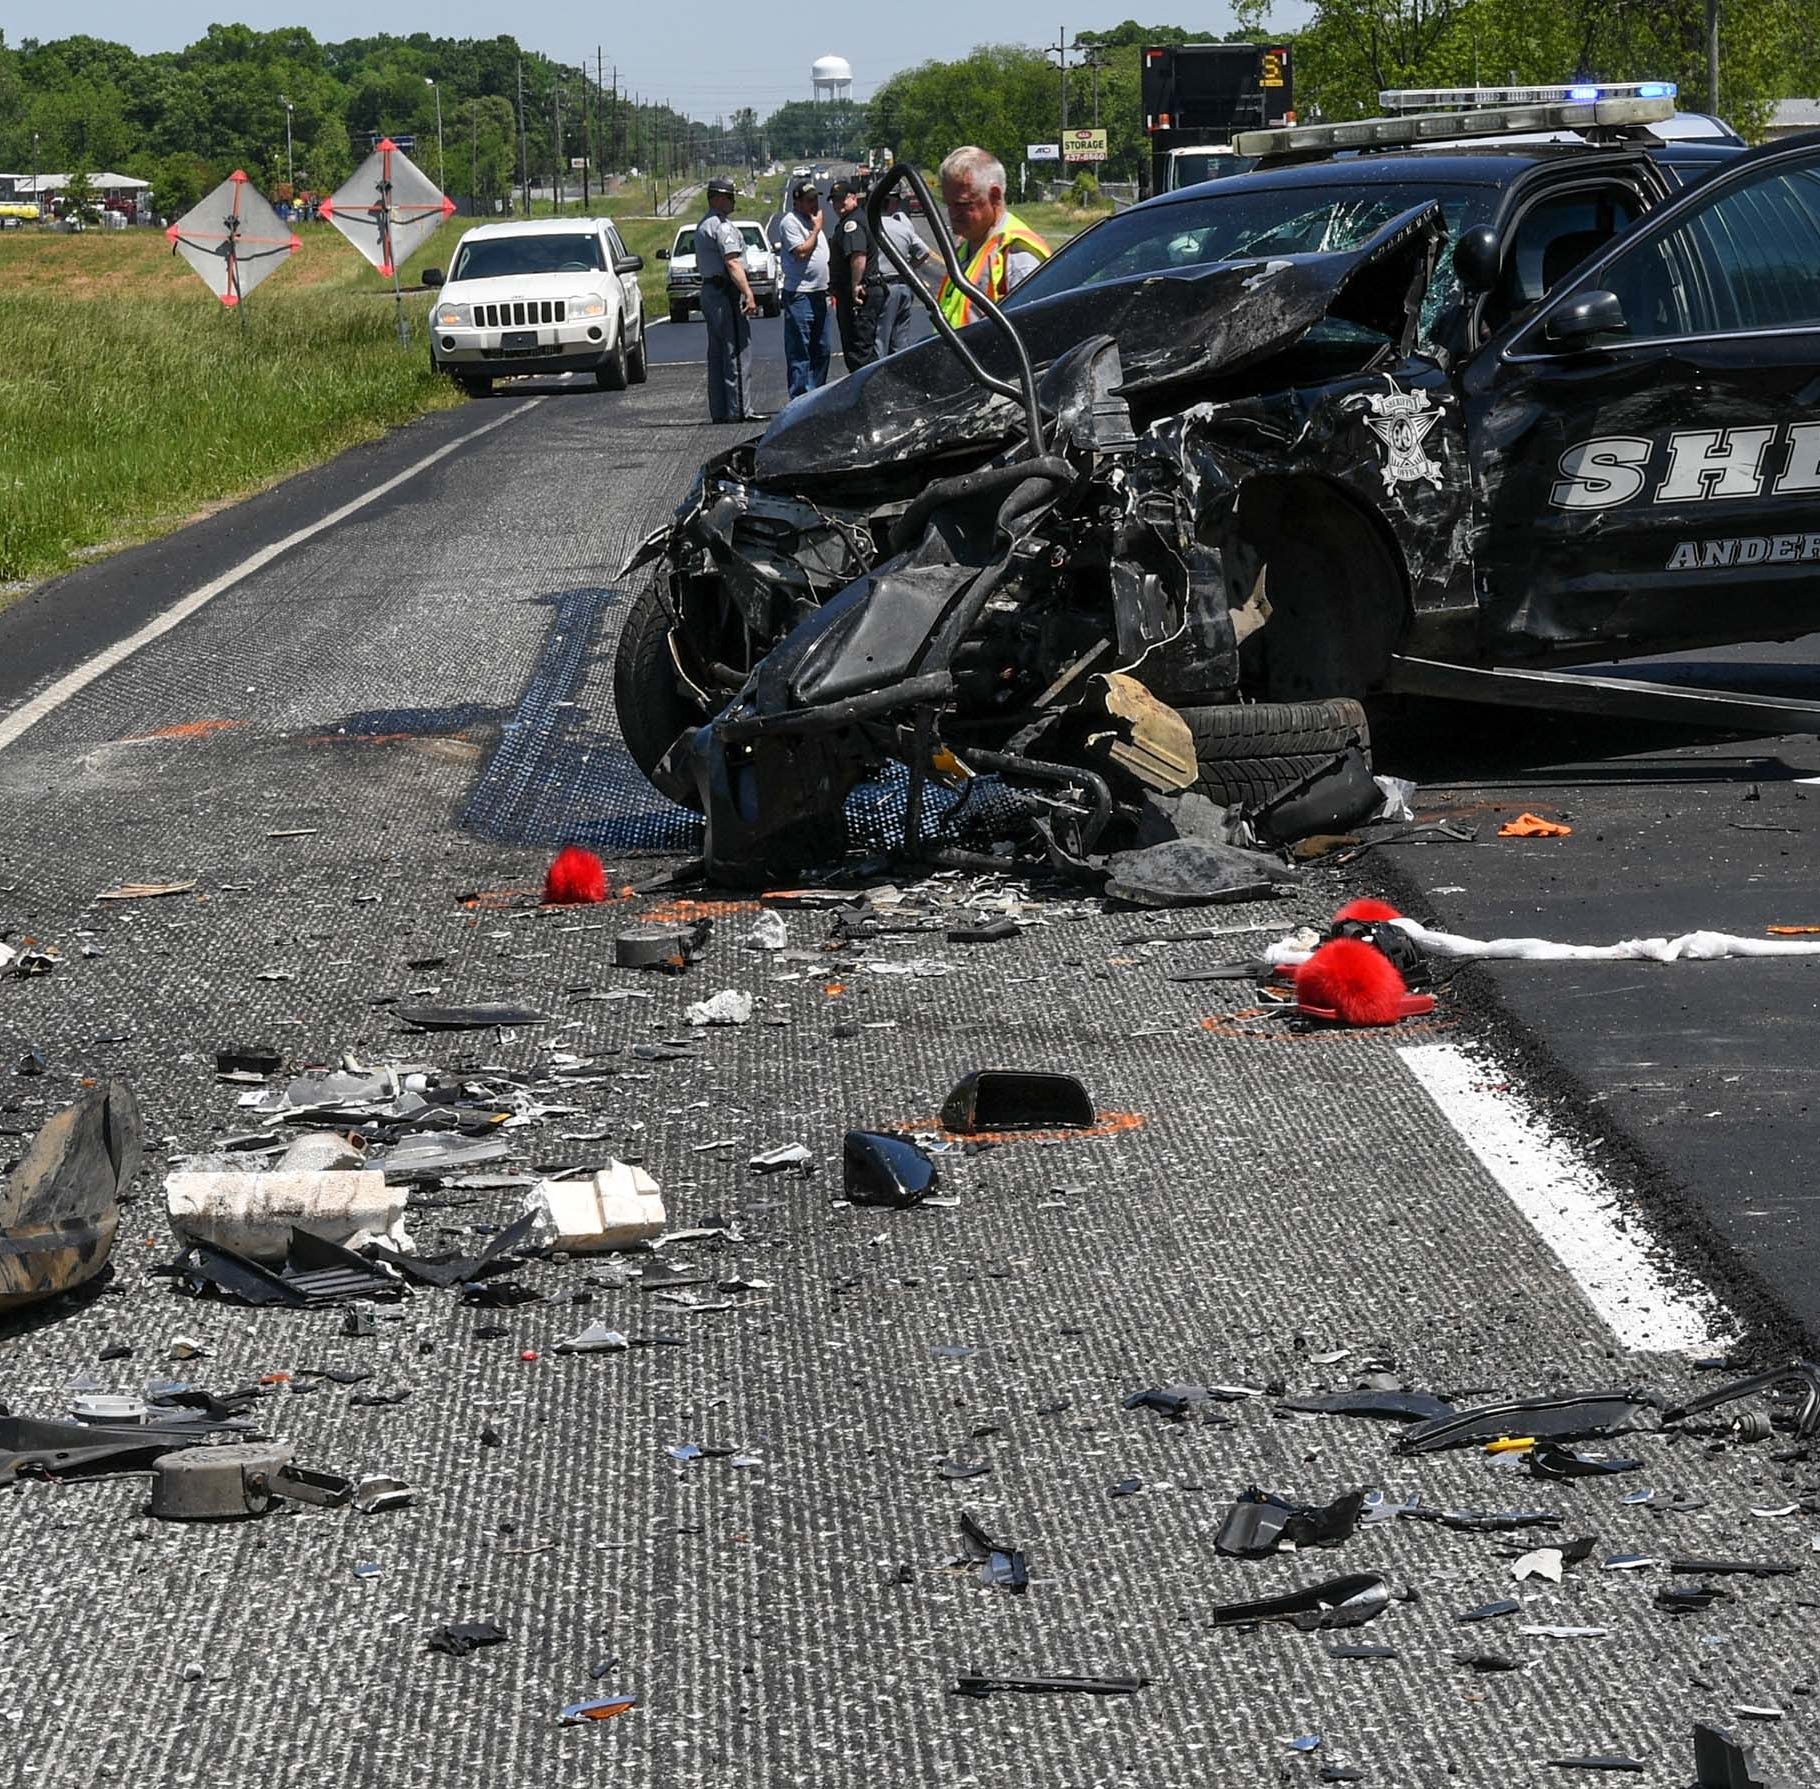 Serious injury results from wreck involving Anderson County sheriff's deputy